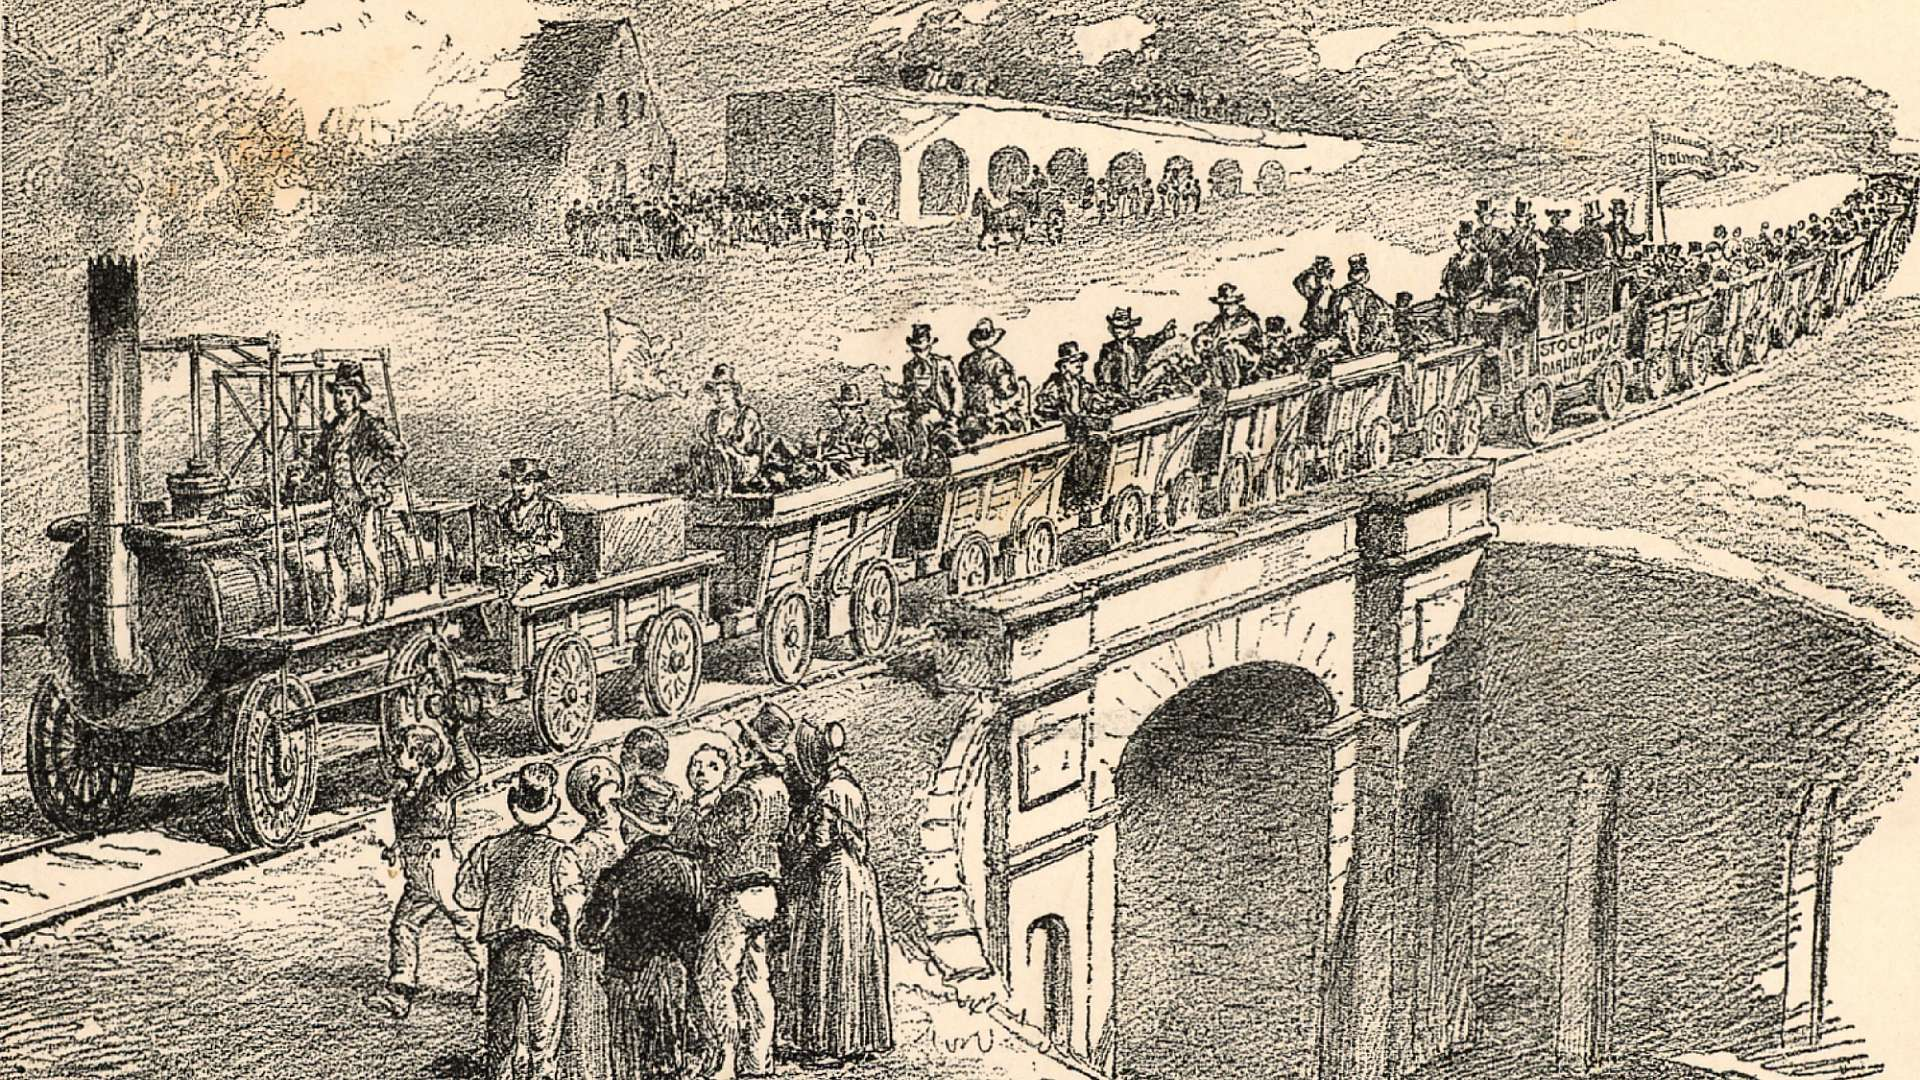 Crowds gather for the opening of the Stockton and Darlington Railway in 1825